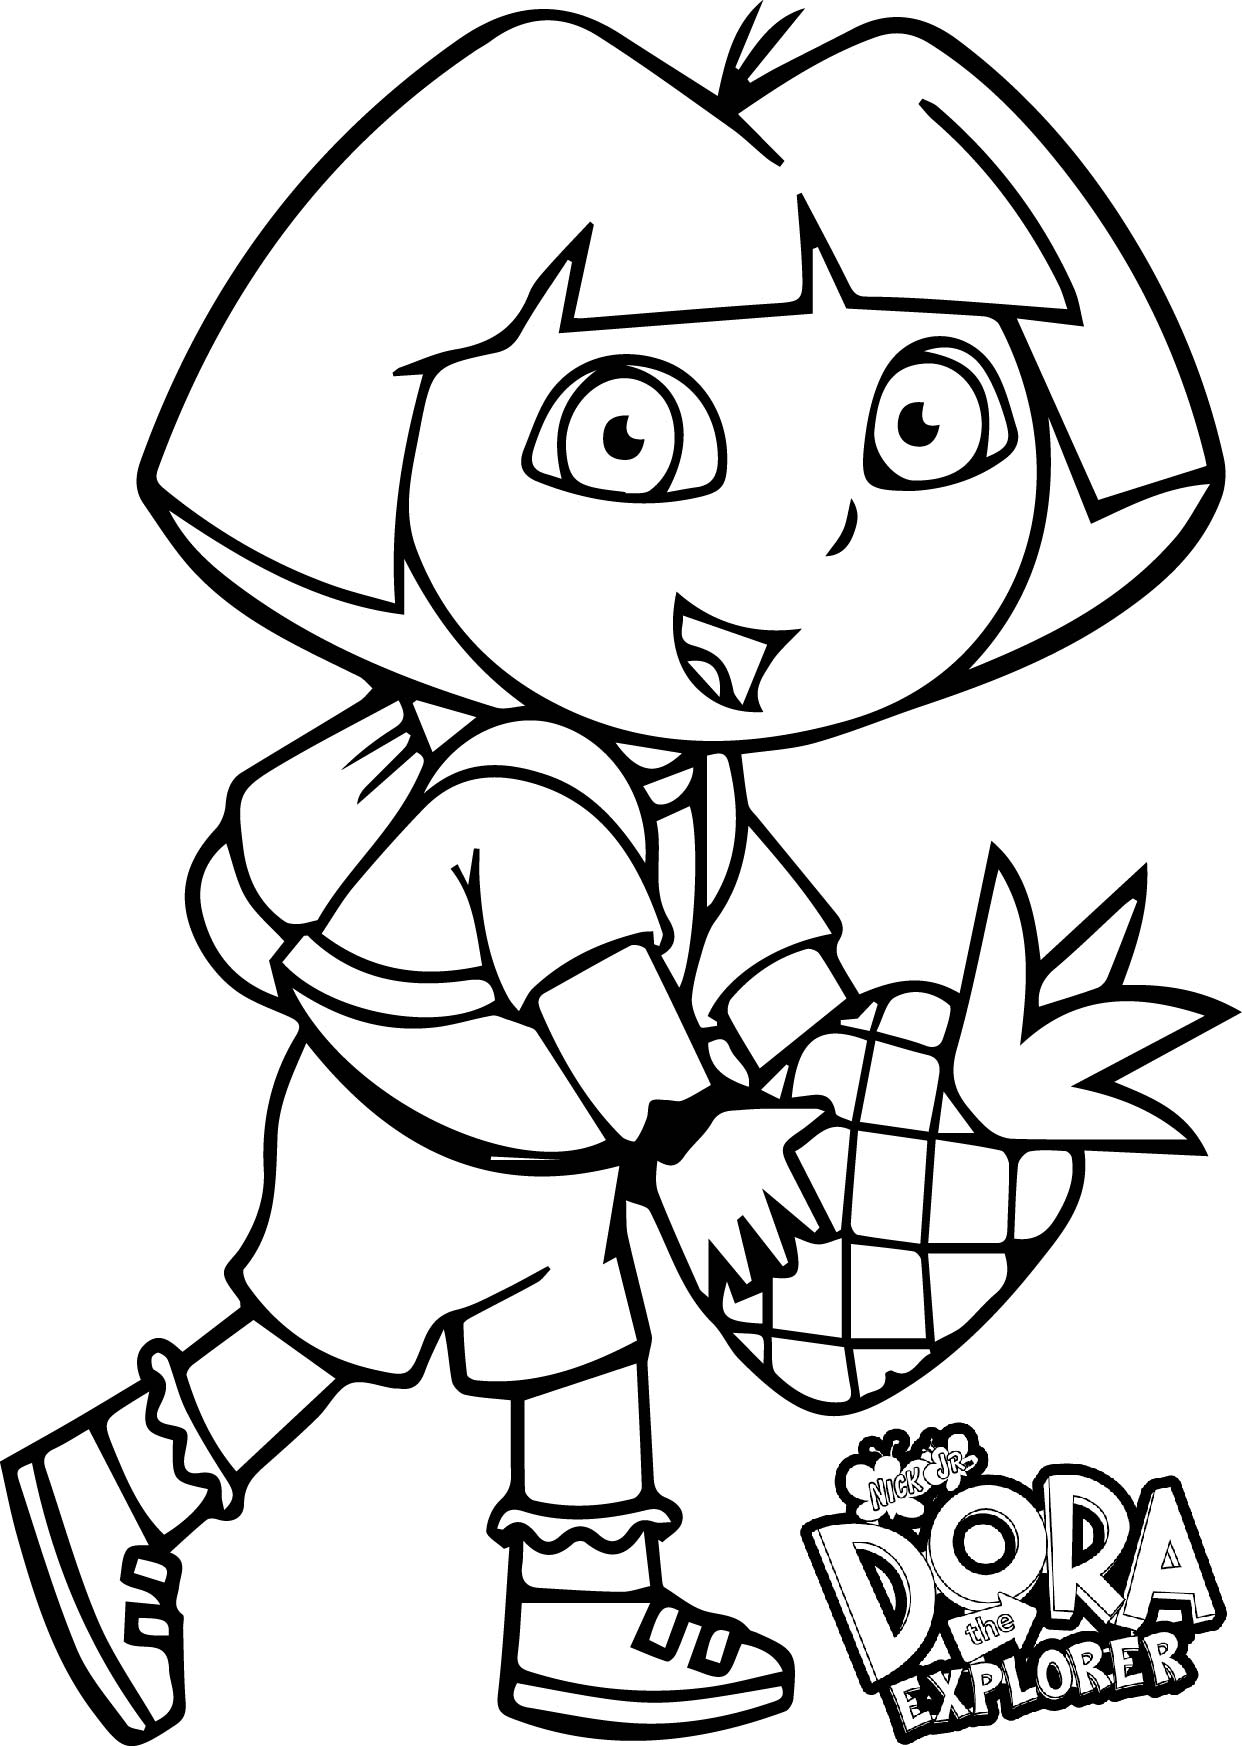 Hd Wallpapers Dora Black And White Coloring Pages Print